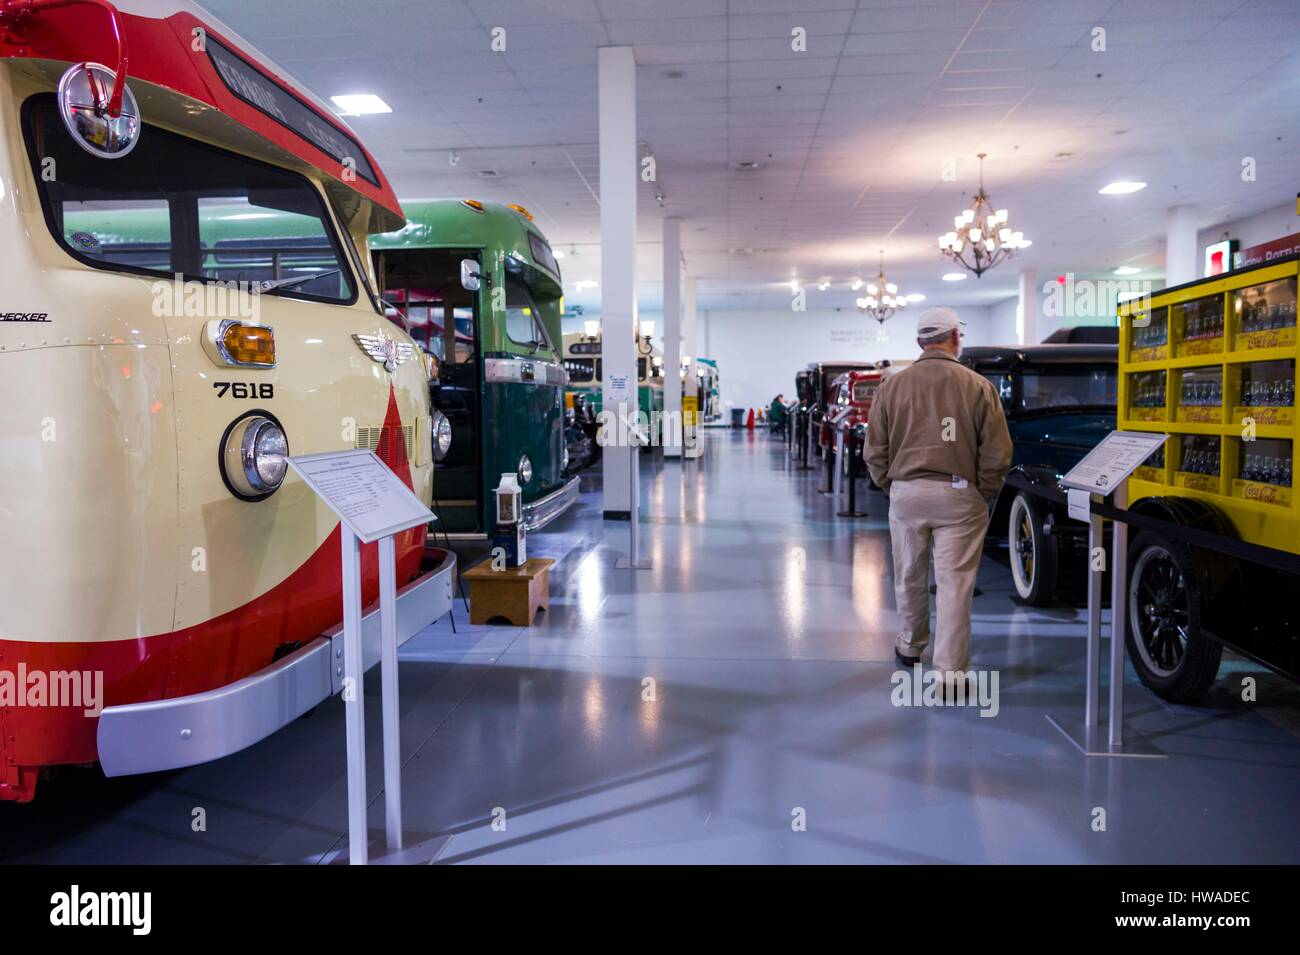 Museum Of Bus Transportation High Resolution Stock Photography And Images Alamy